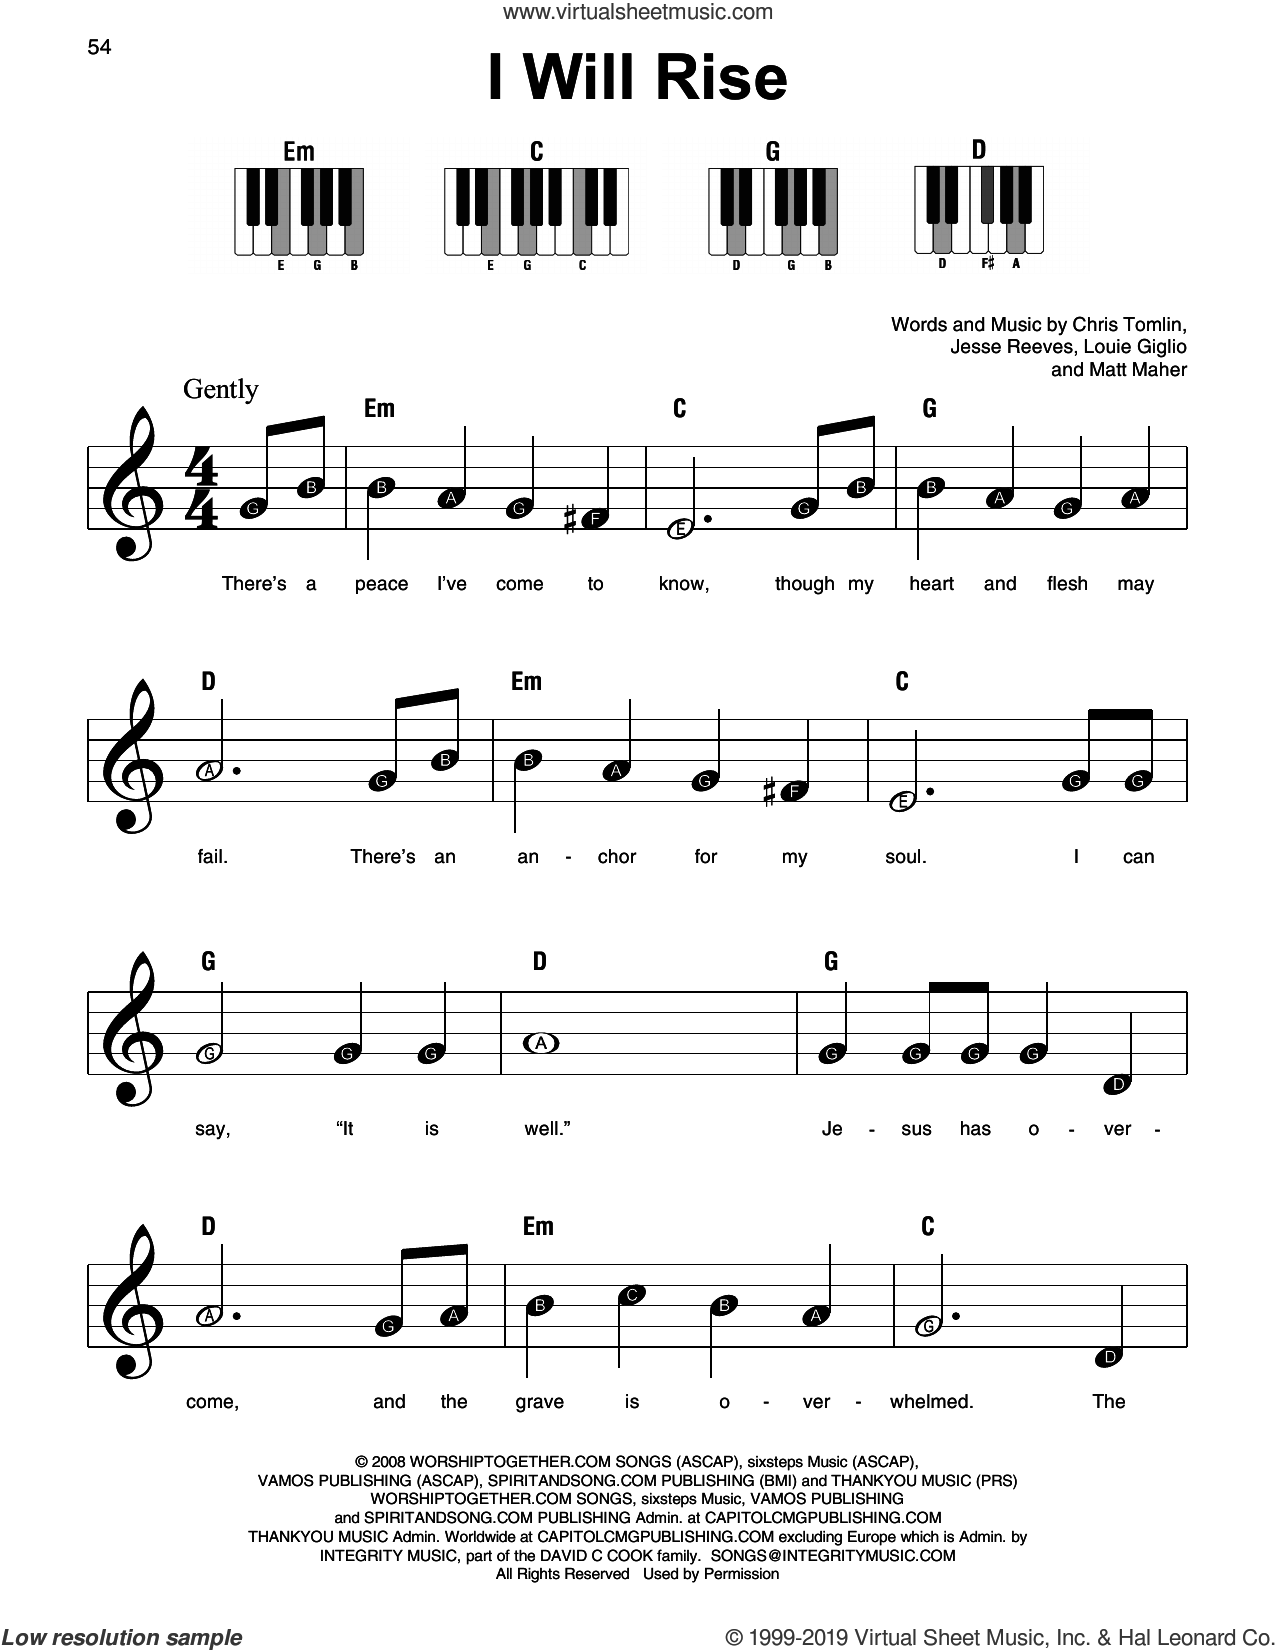 I Will Rise sheet music for piano solo by Chris Tomlin, Jesse Reeves, Louis Giglio and Matt Maher, beginner skill level